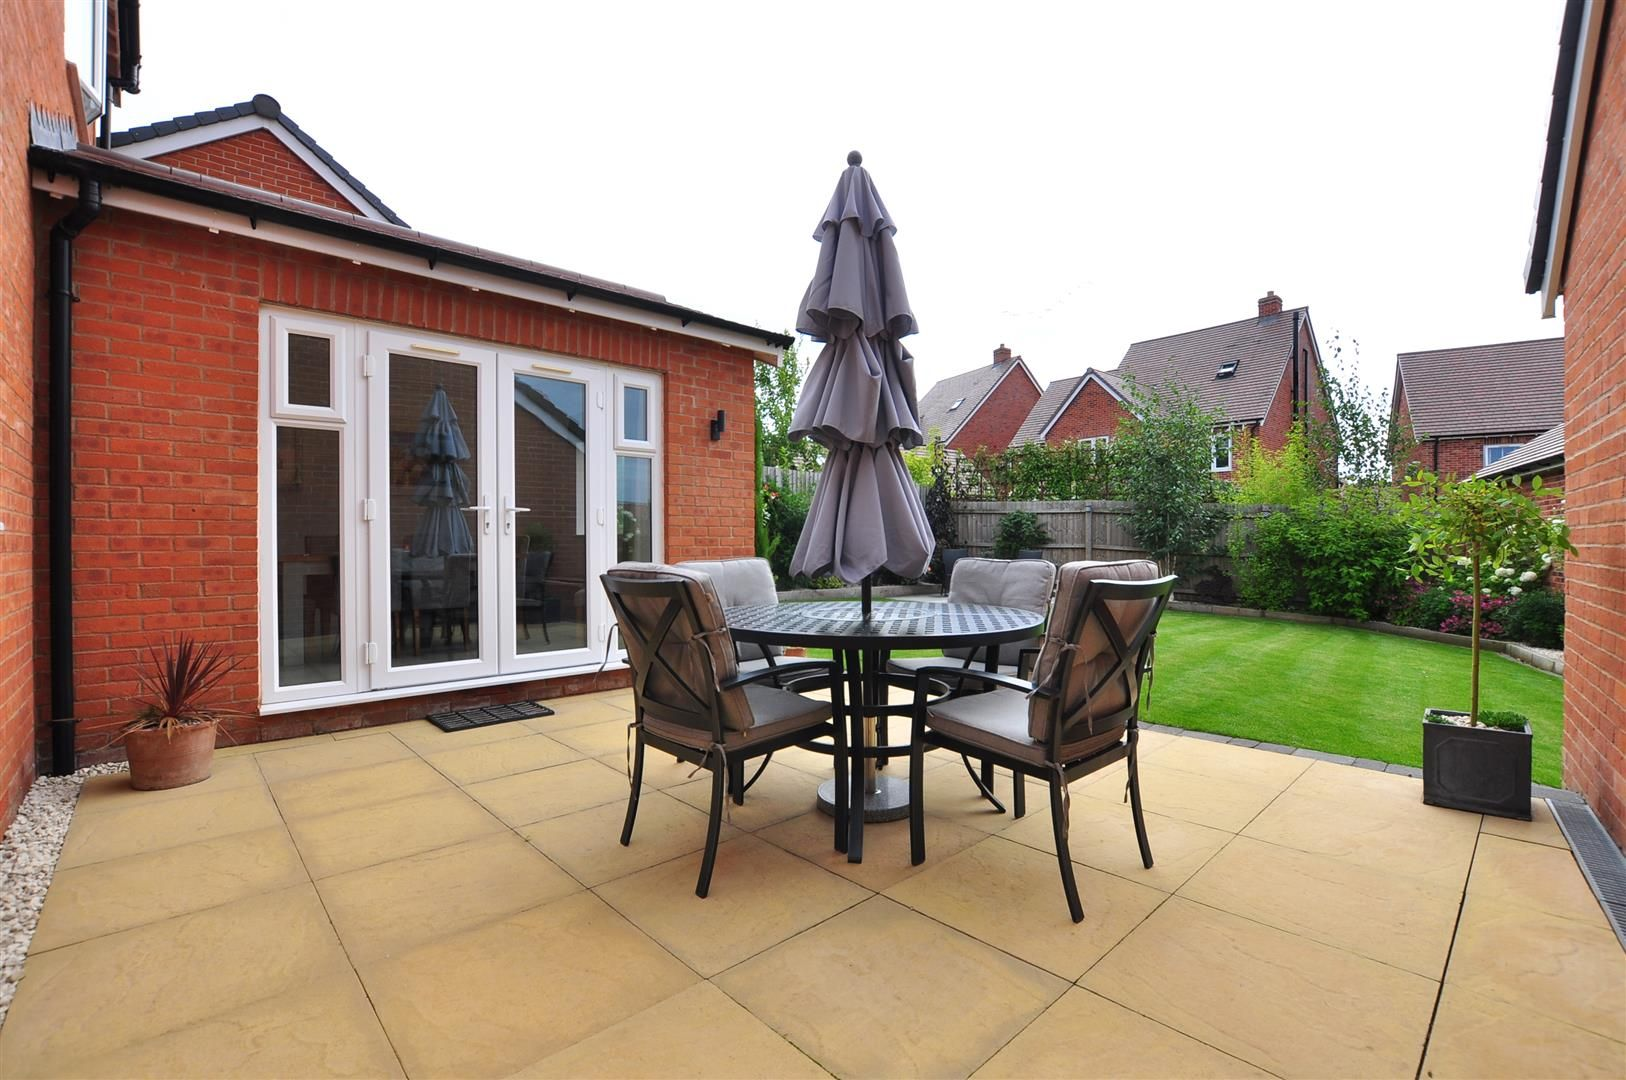 4 bed detached for sale in Hagley 21